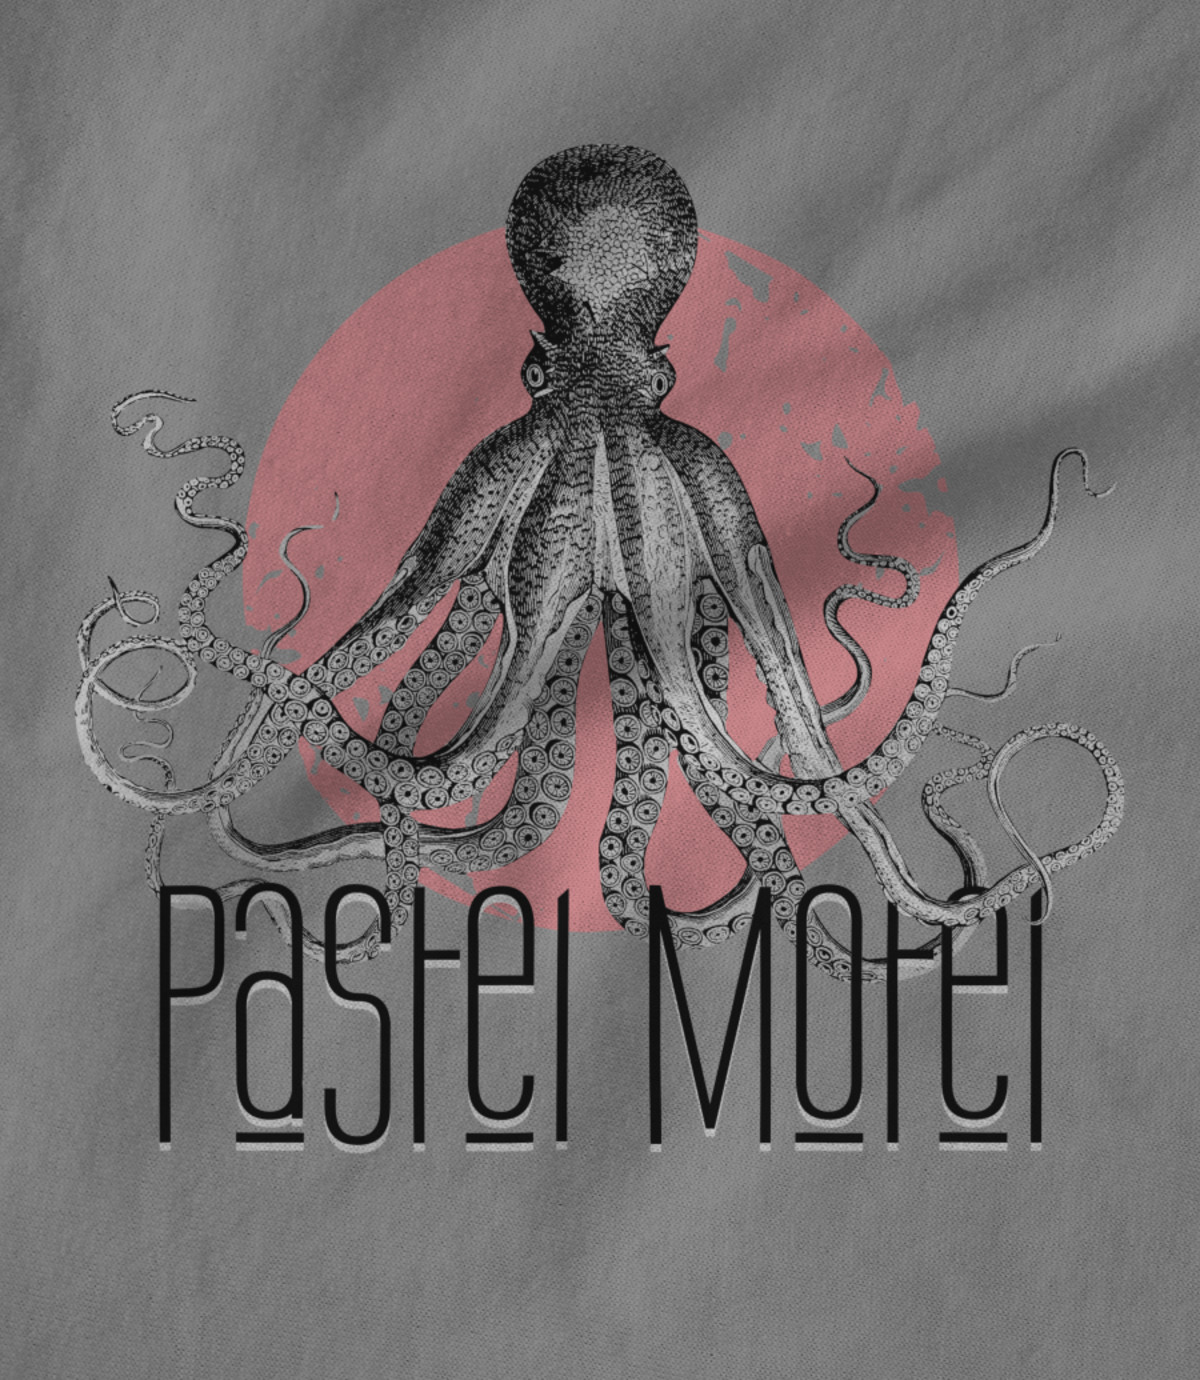 Pastel motel octopus   high dive 1471378608